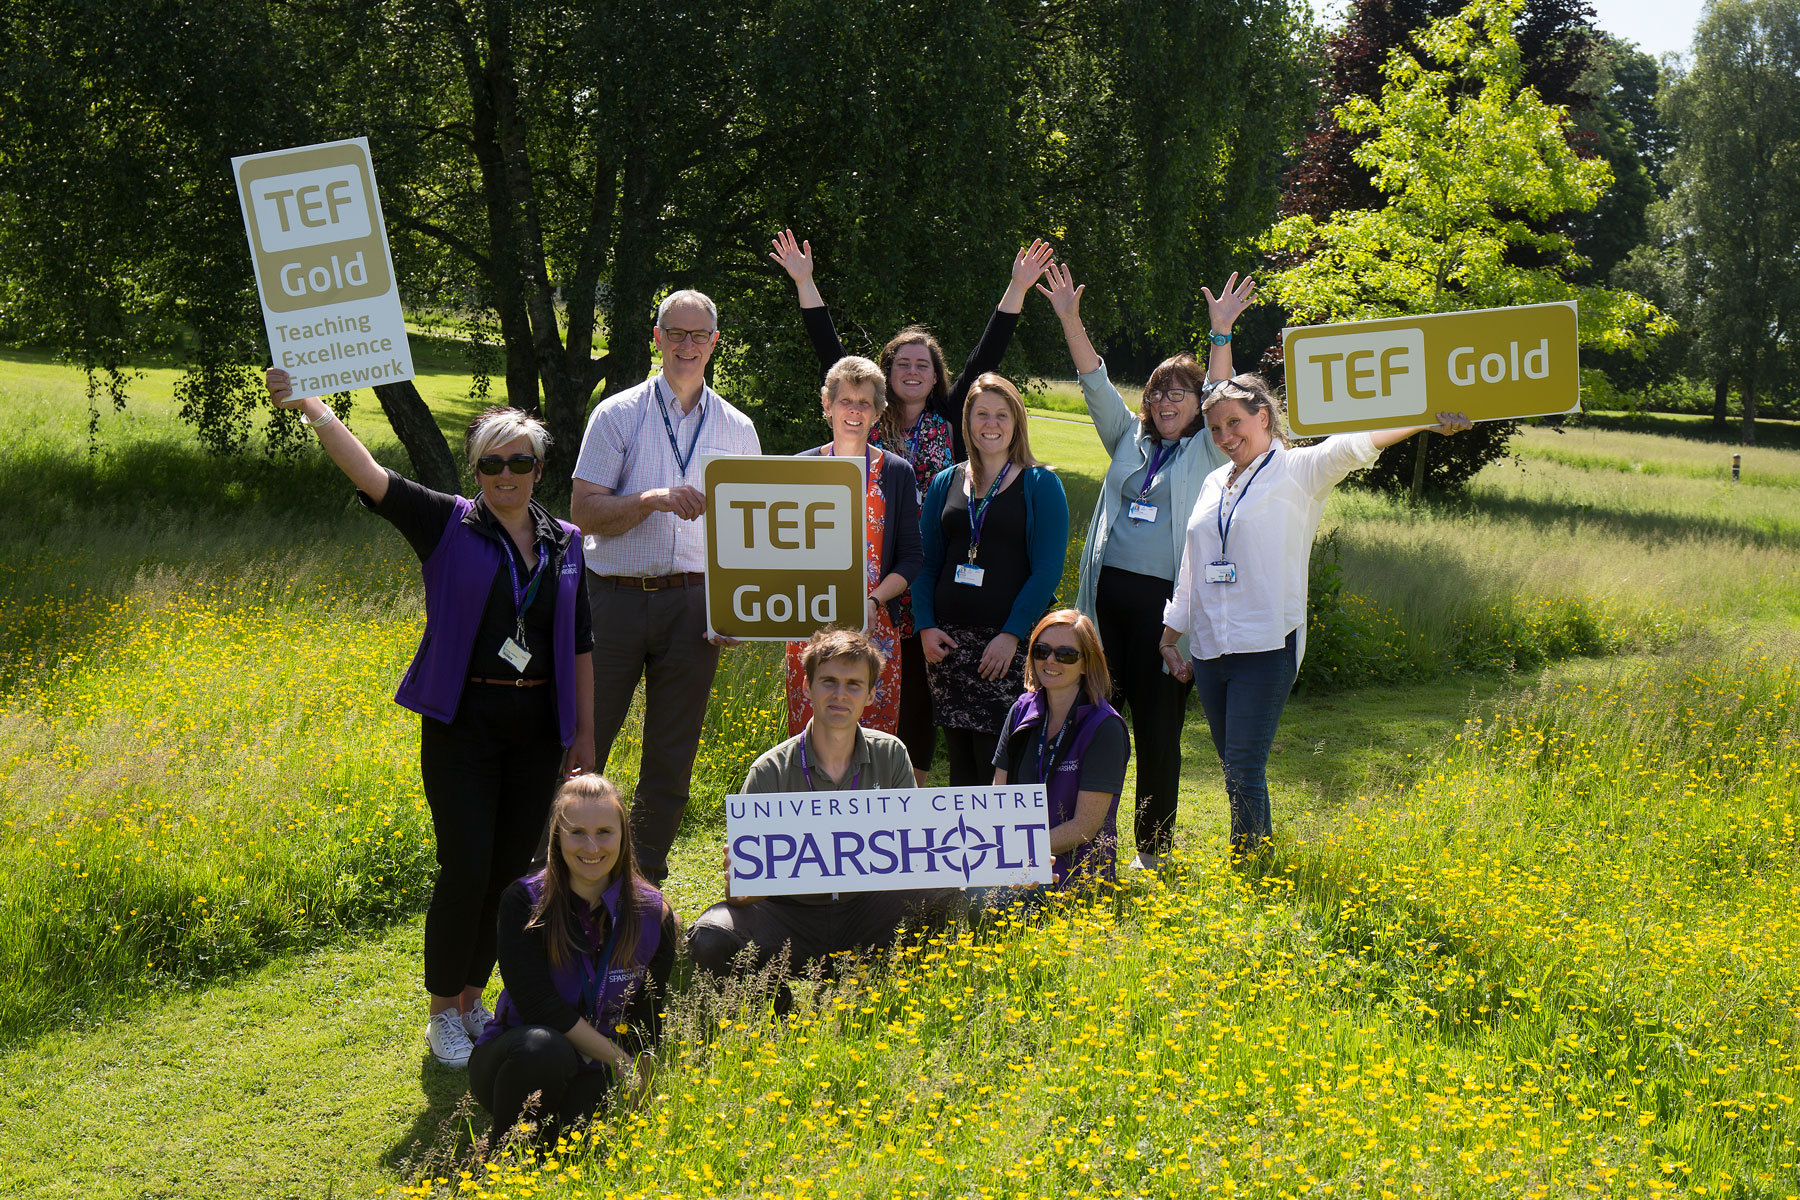 Staff at Sparsholt College's University Centre celebrate the award